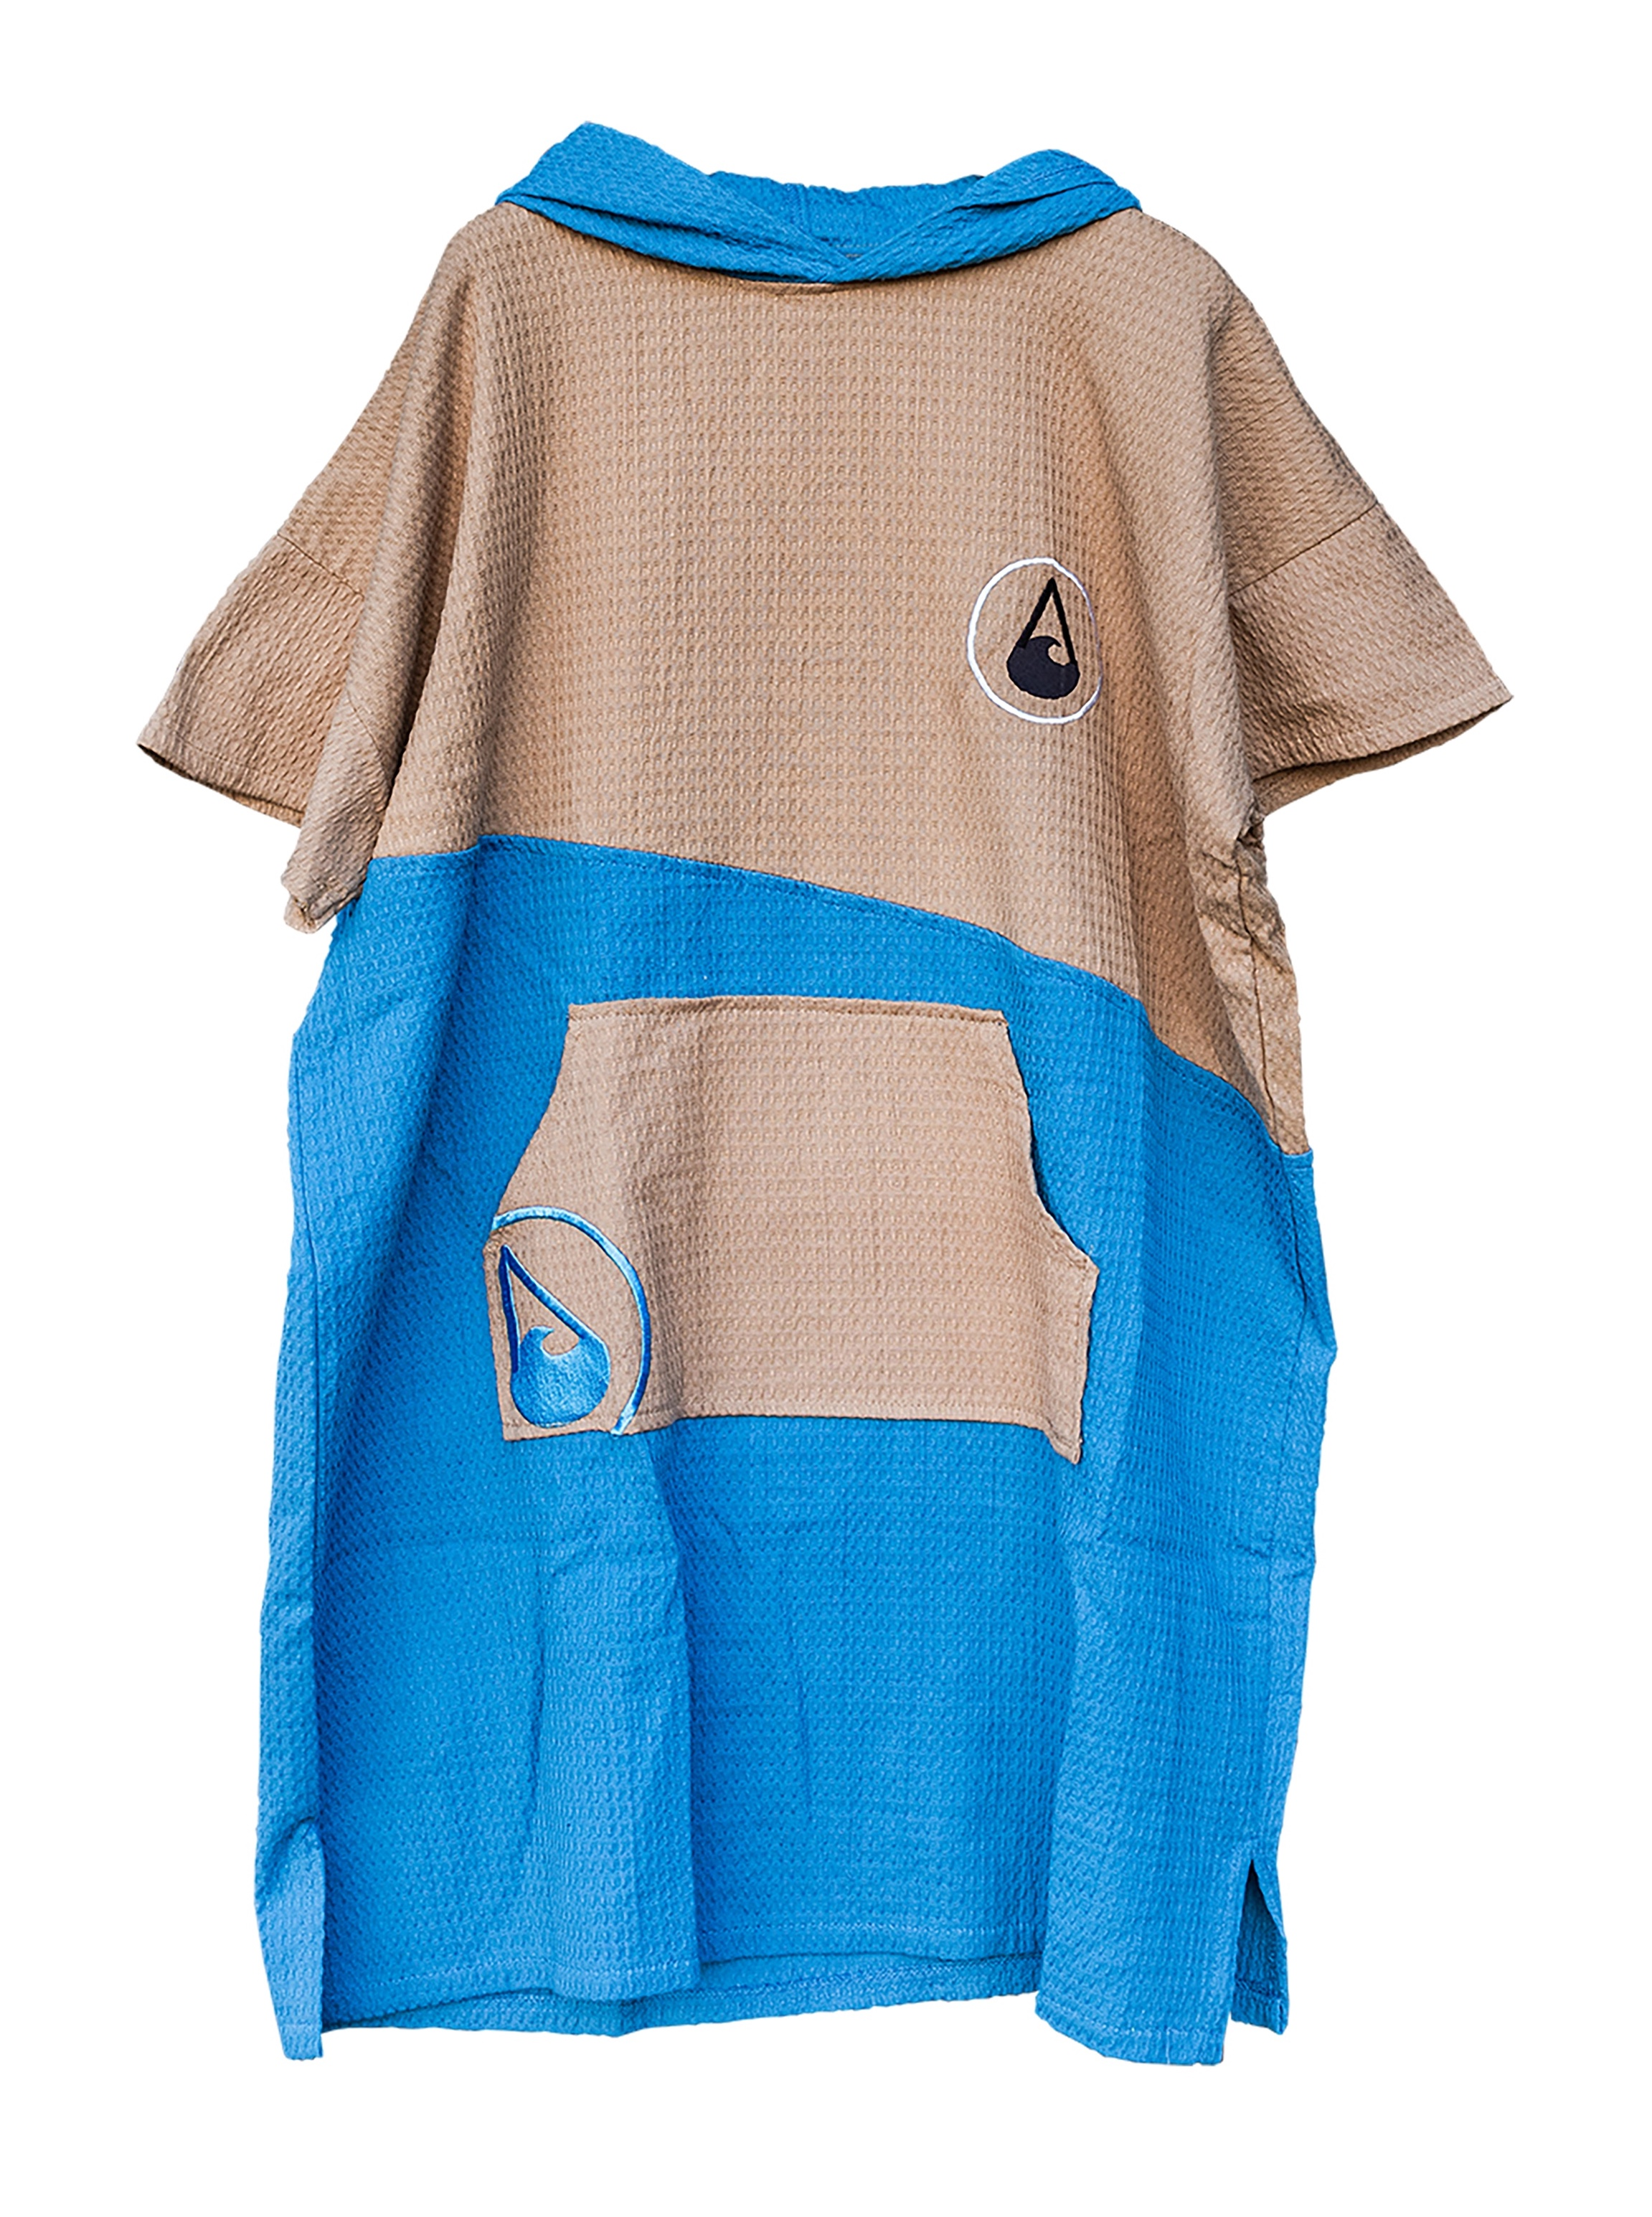 Wave Hawaii Travel Poncho LIGHD Badeponcho large Men Farbe: blue Größe: OSFA